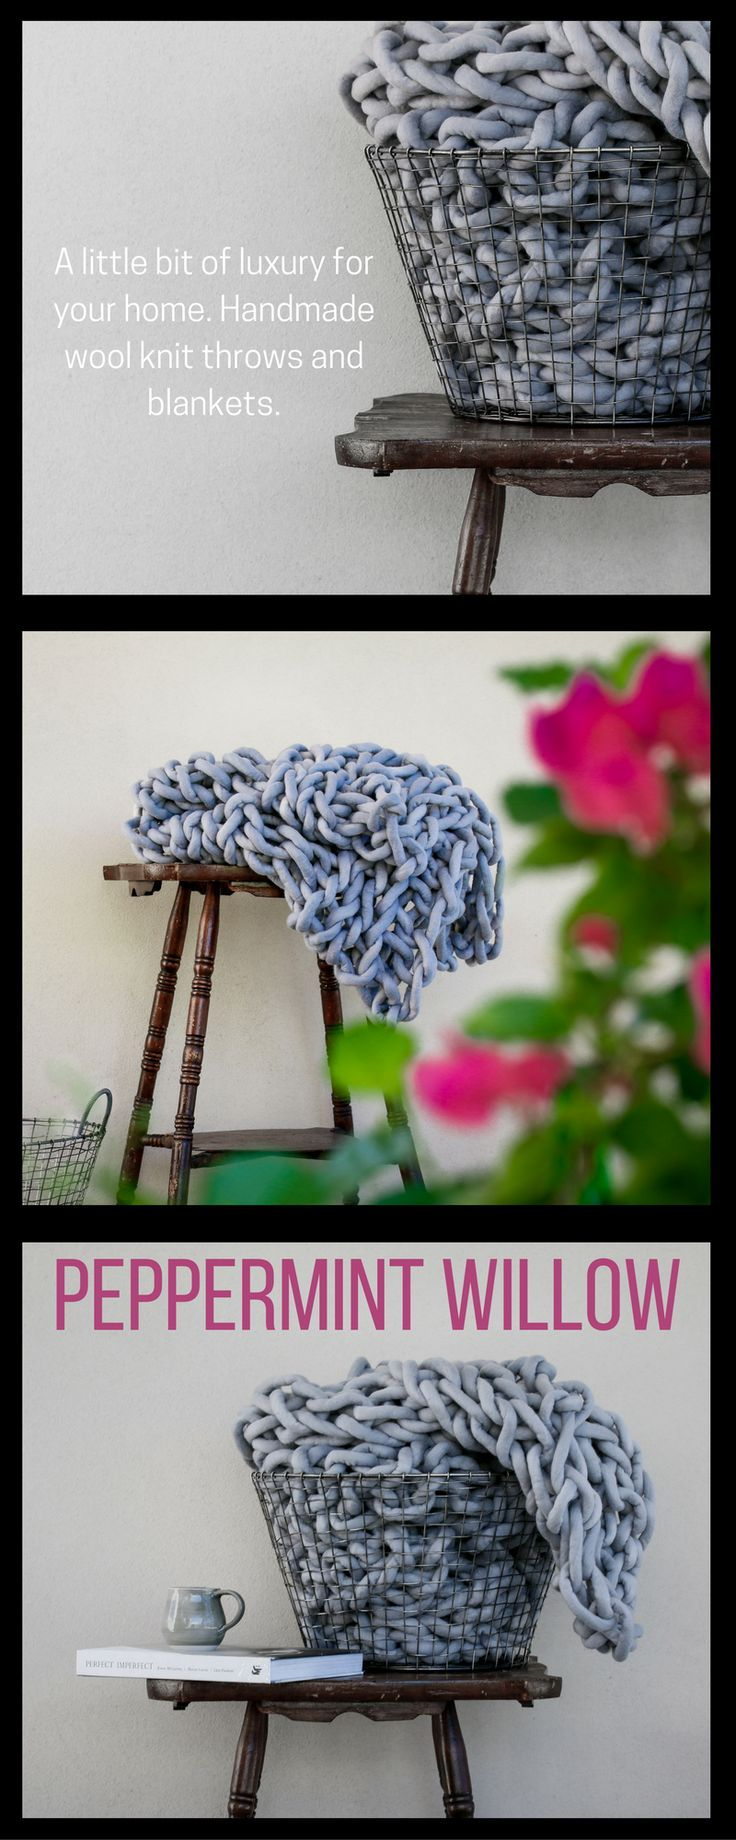 These throws are made from high quality felted Australian merino wool.